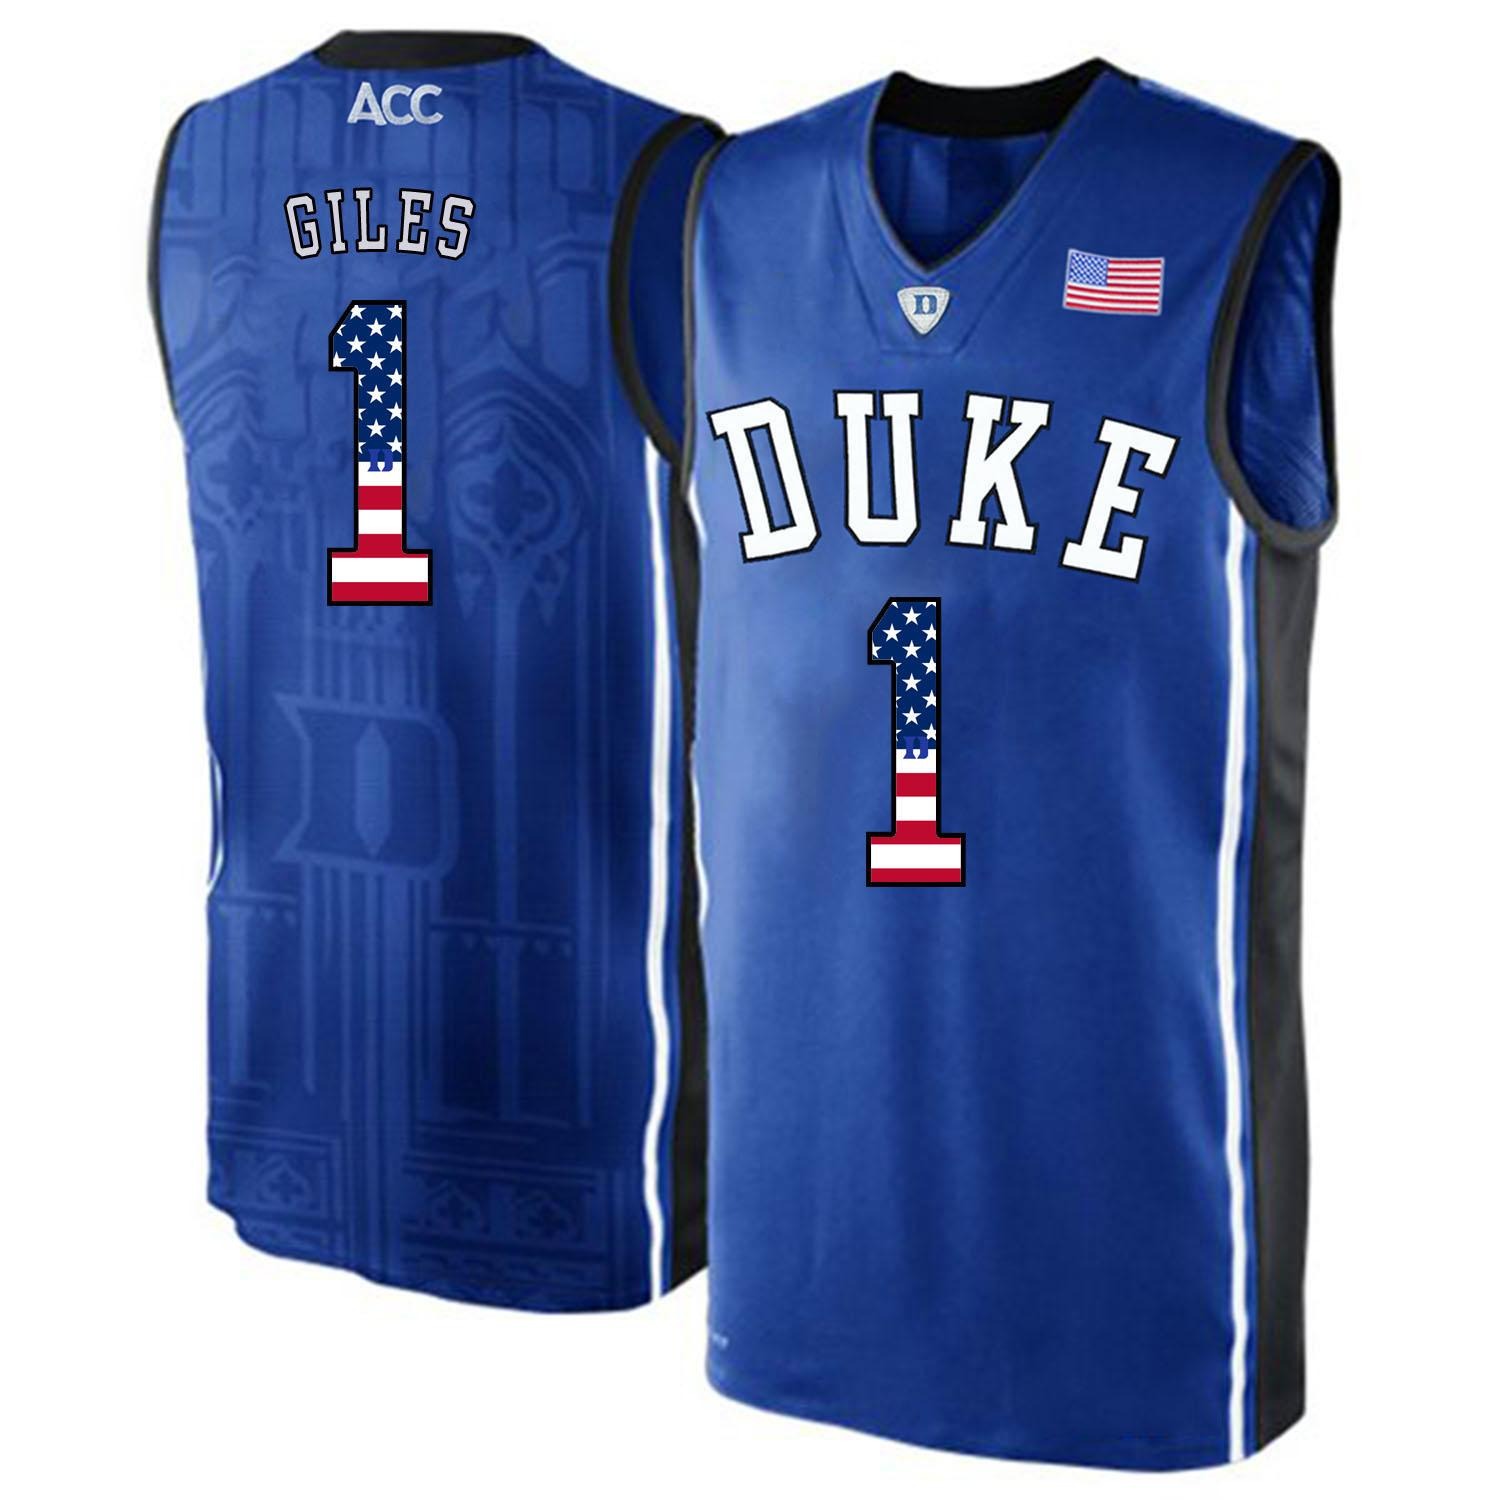 313cc554c3d 2019 Mens Harry Giles Jersey Custom Duke Blue Devils College ...